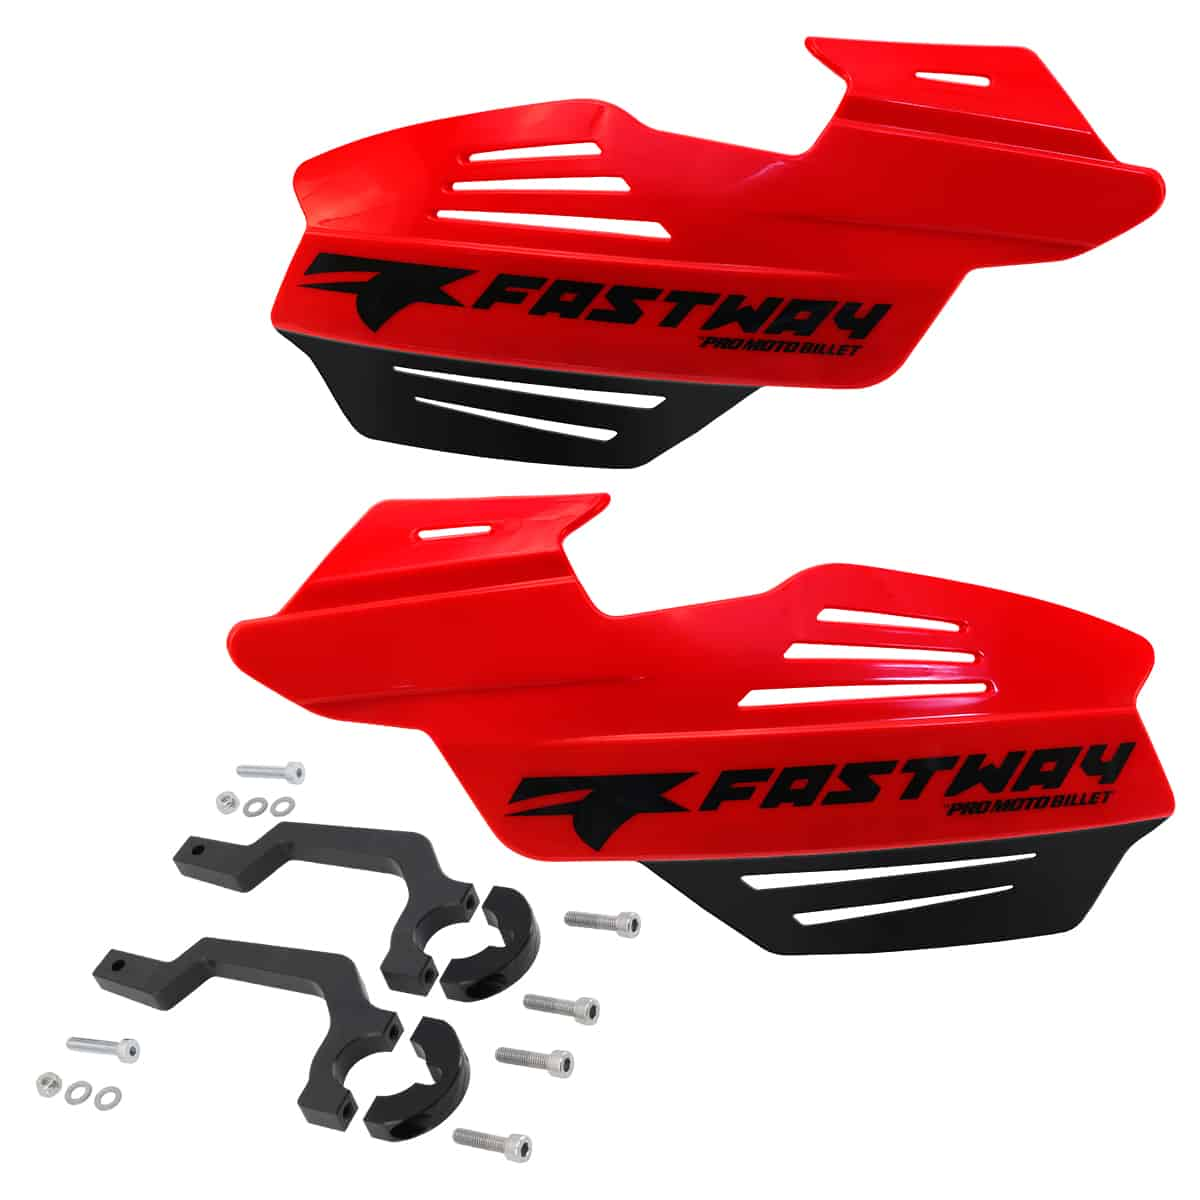 Fastway Flak Shield Handguard System for Motorcyces and ATV's –  Red and Black